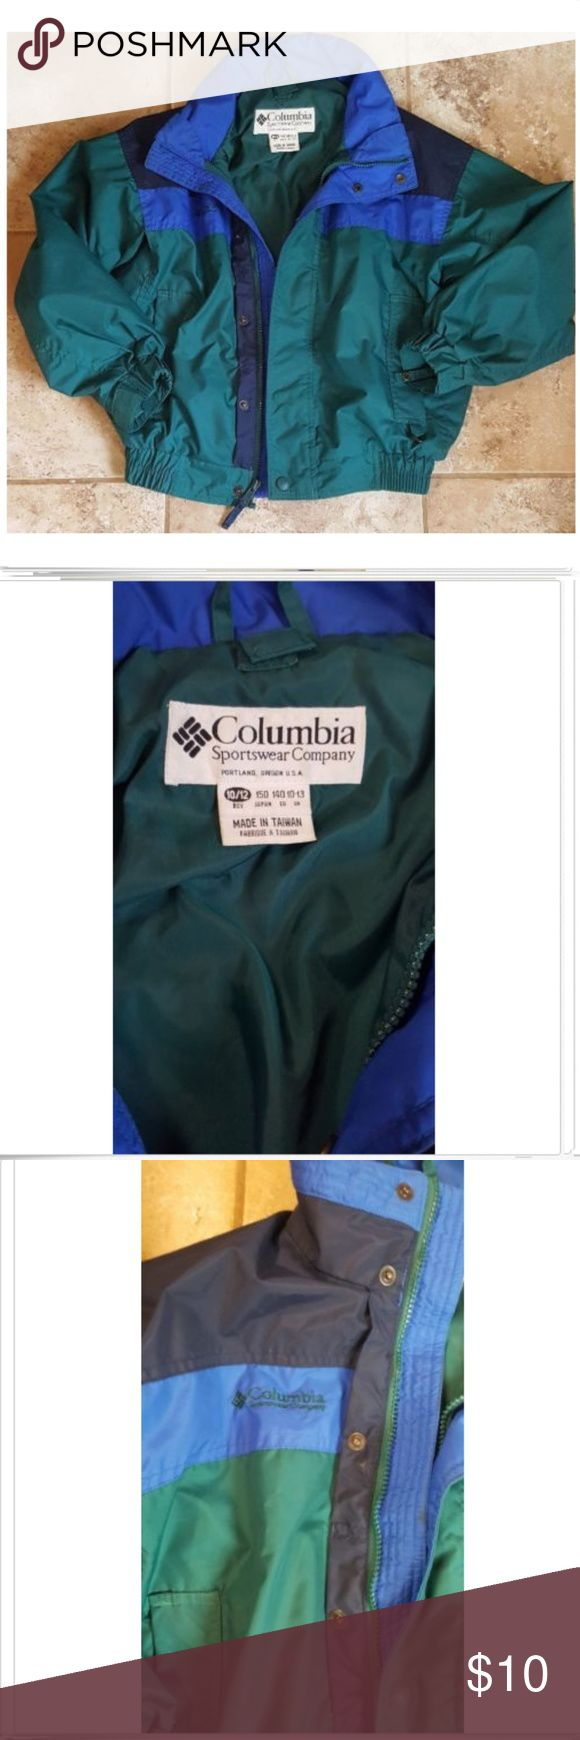 Columbia Sportswear Bugaboo Jacket Coat Sz 10/12 Columbia Sportswear Bugaboo Jacket Coat Sz 10/12. You are purchasing a youth size 10/12 COLUMBIA SPORTSWEAR BUGABOO jacket, elastic waist, double zipper to zip from either side and snap up to the neck, Velcro at the wrists, snaps inside the wrists for the ski poles, colors Navy, royal blue, green. Nice pre-owned condition, no rips no tears no stains. Columbia Jackets & Coats